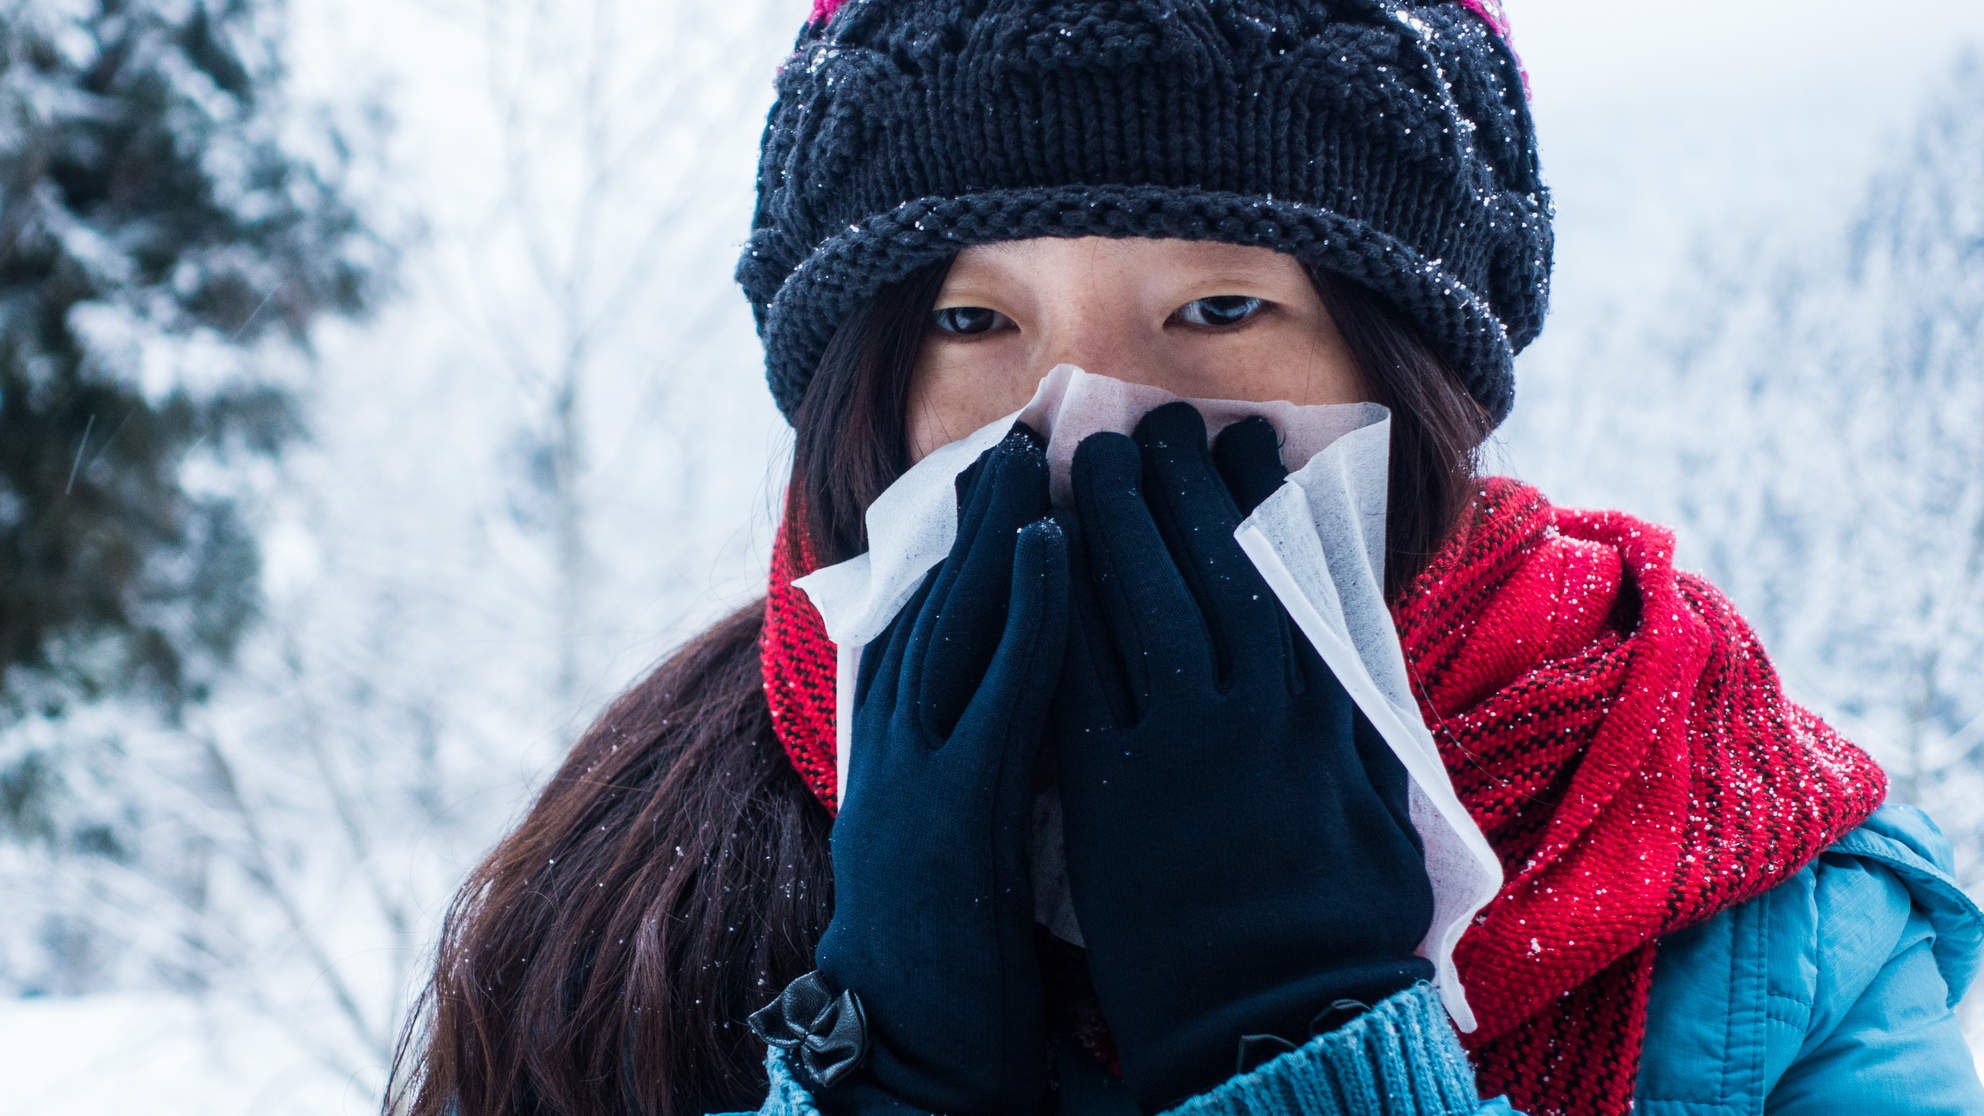 7 Things That Can Happen to Your Body When It's Freezing Out